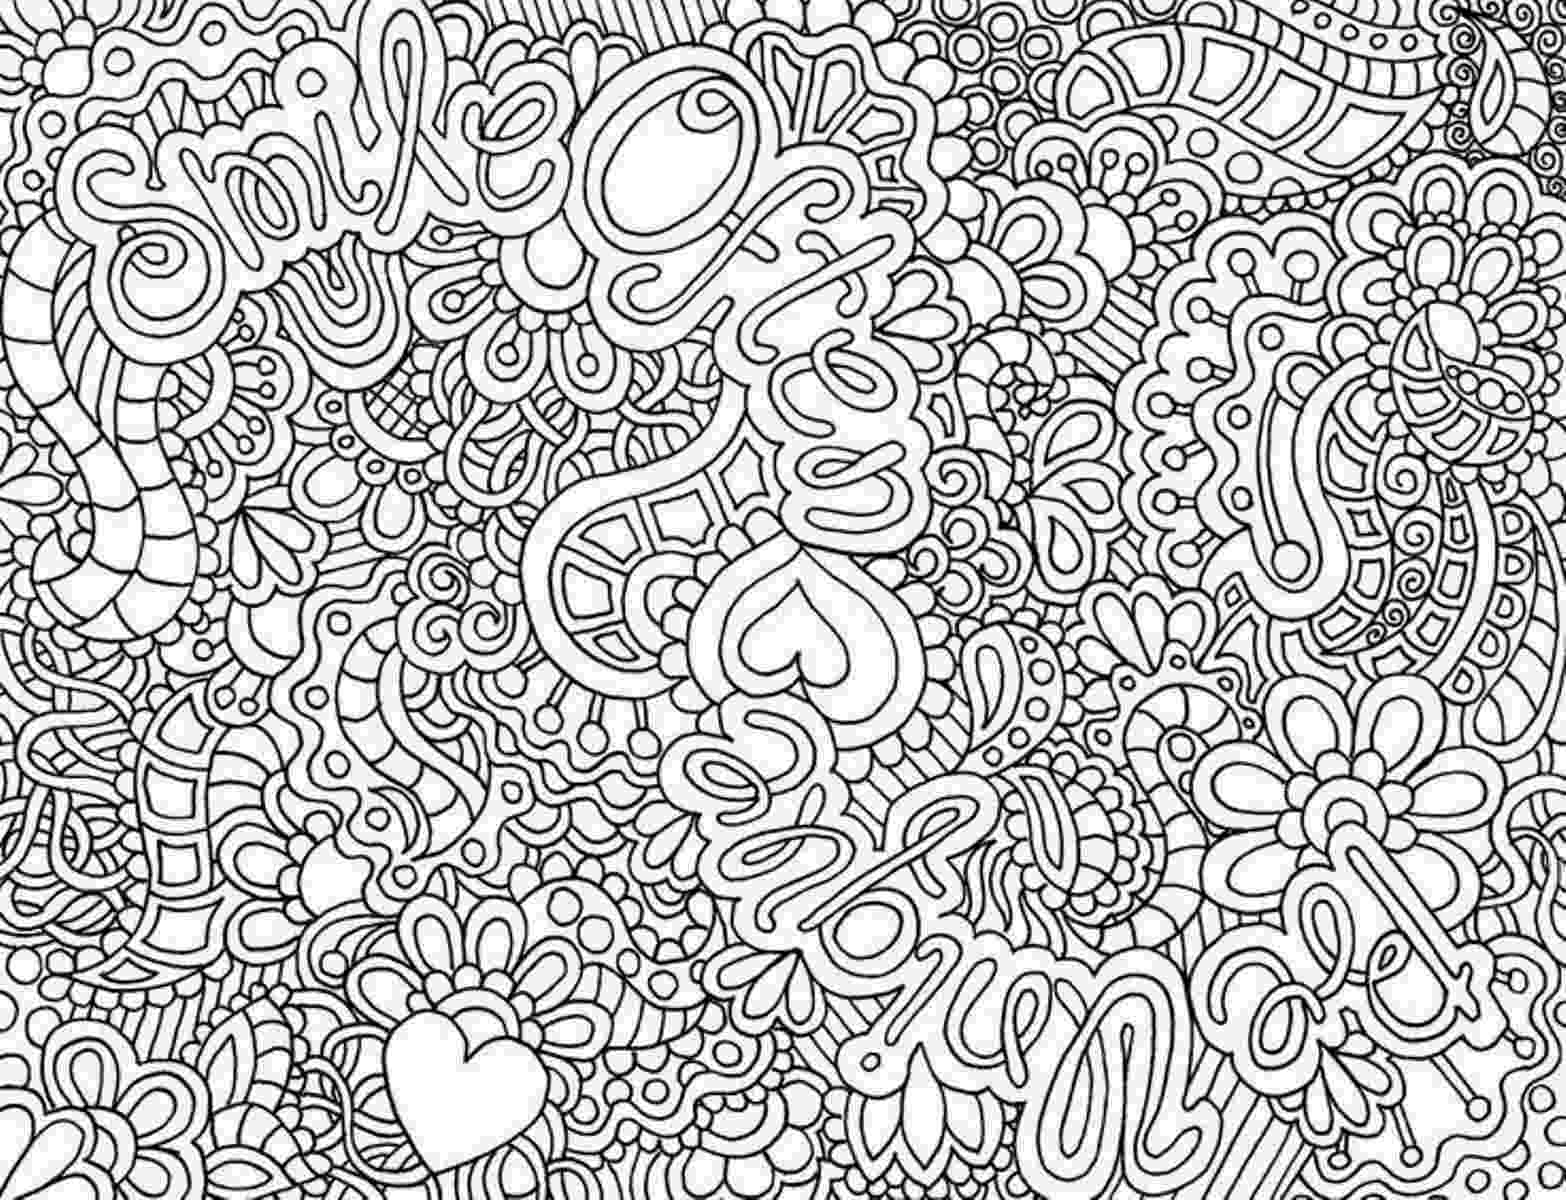 intricate coloring pages 29 intricate mandala coloring pages collection coloring intricate pages coloring